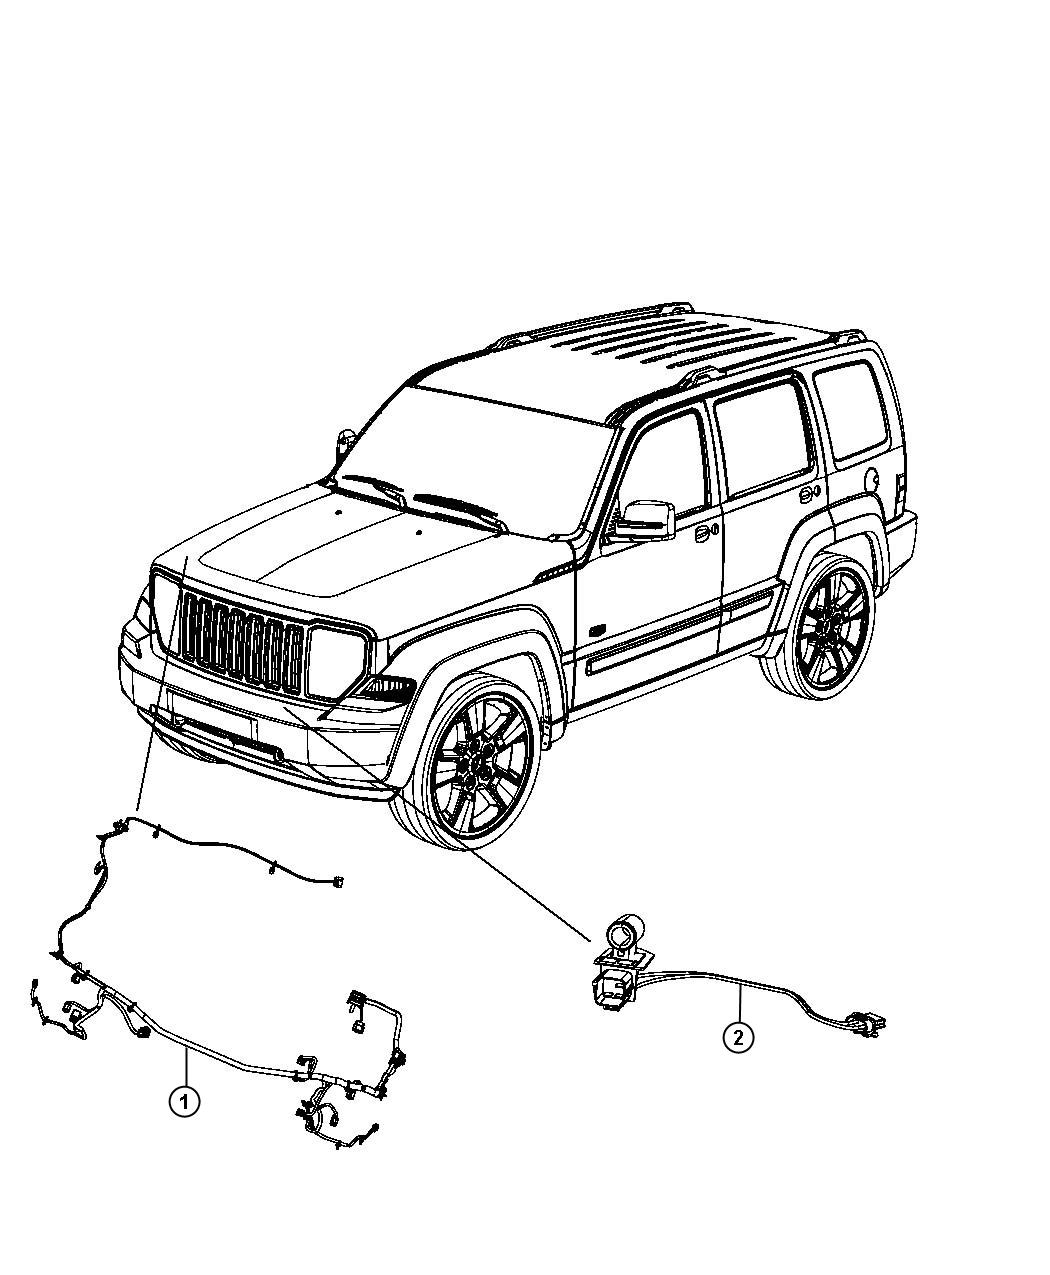 Jeep Liberty Wiring. Front end module. [fog lamps